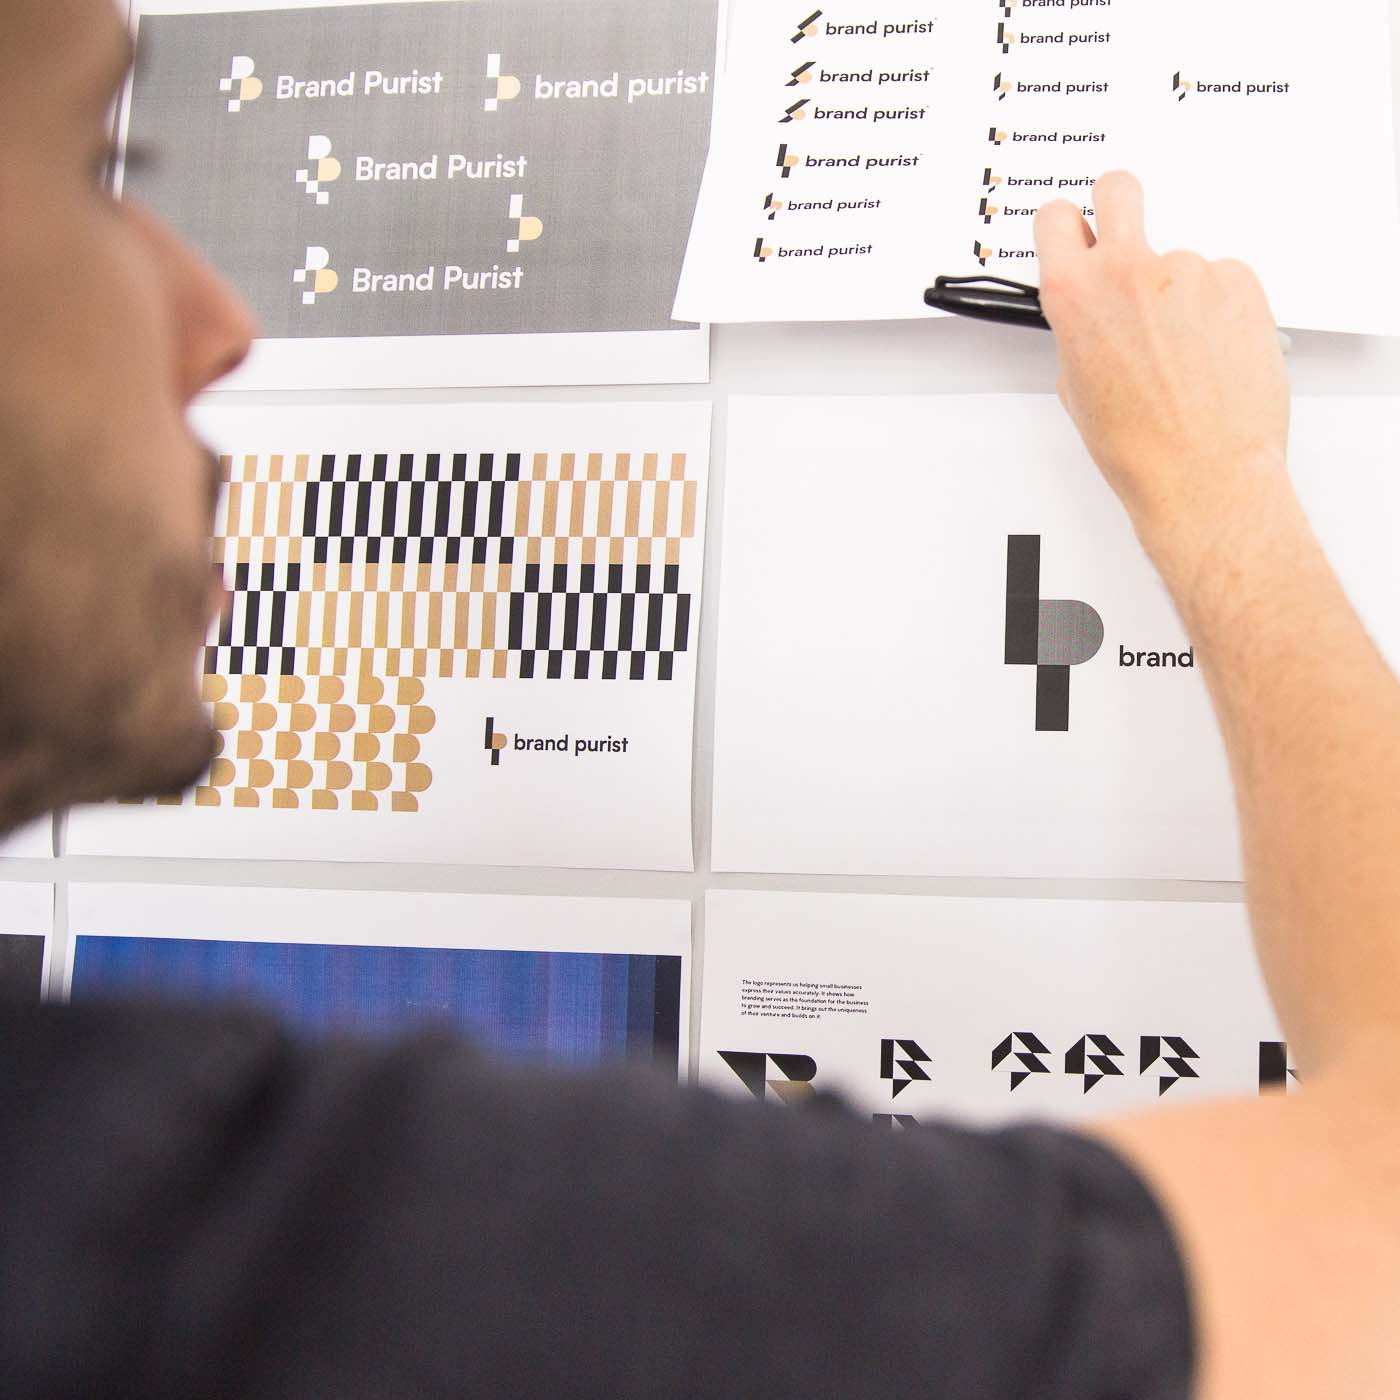 Designer is reviewing logo designs printed and stuck on a wall.